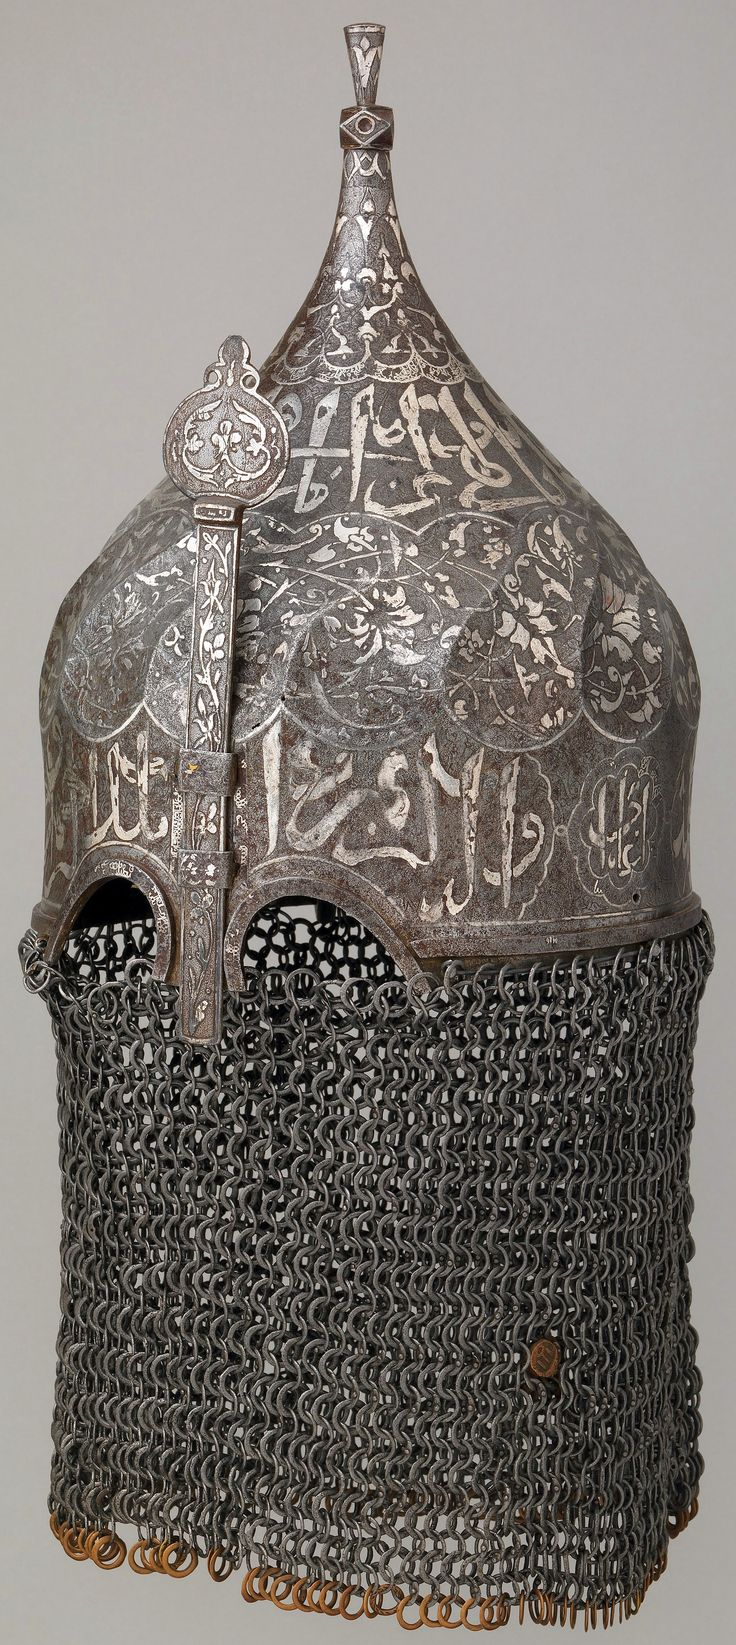 Indo-Persian turban helmet, late 15th century, Persian, Caucasian, or Anatolian, St Irene (Ottoman) arsenal mark, steel, silver, copper alloy, H. including mail 22 in. (55.9 cm); H. excluding mail 13 5/8 in. (34.6 cm); Wt. excluding mail 3 lb. 9 oz. (1616 g), Met Museum. Retains the alternating solid and round riveted mail aventail that protected the lower half of the face and neck.